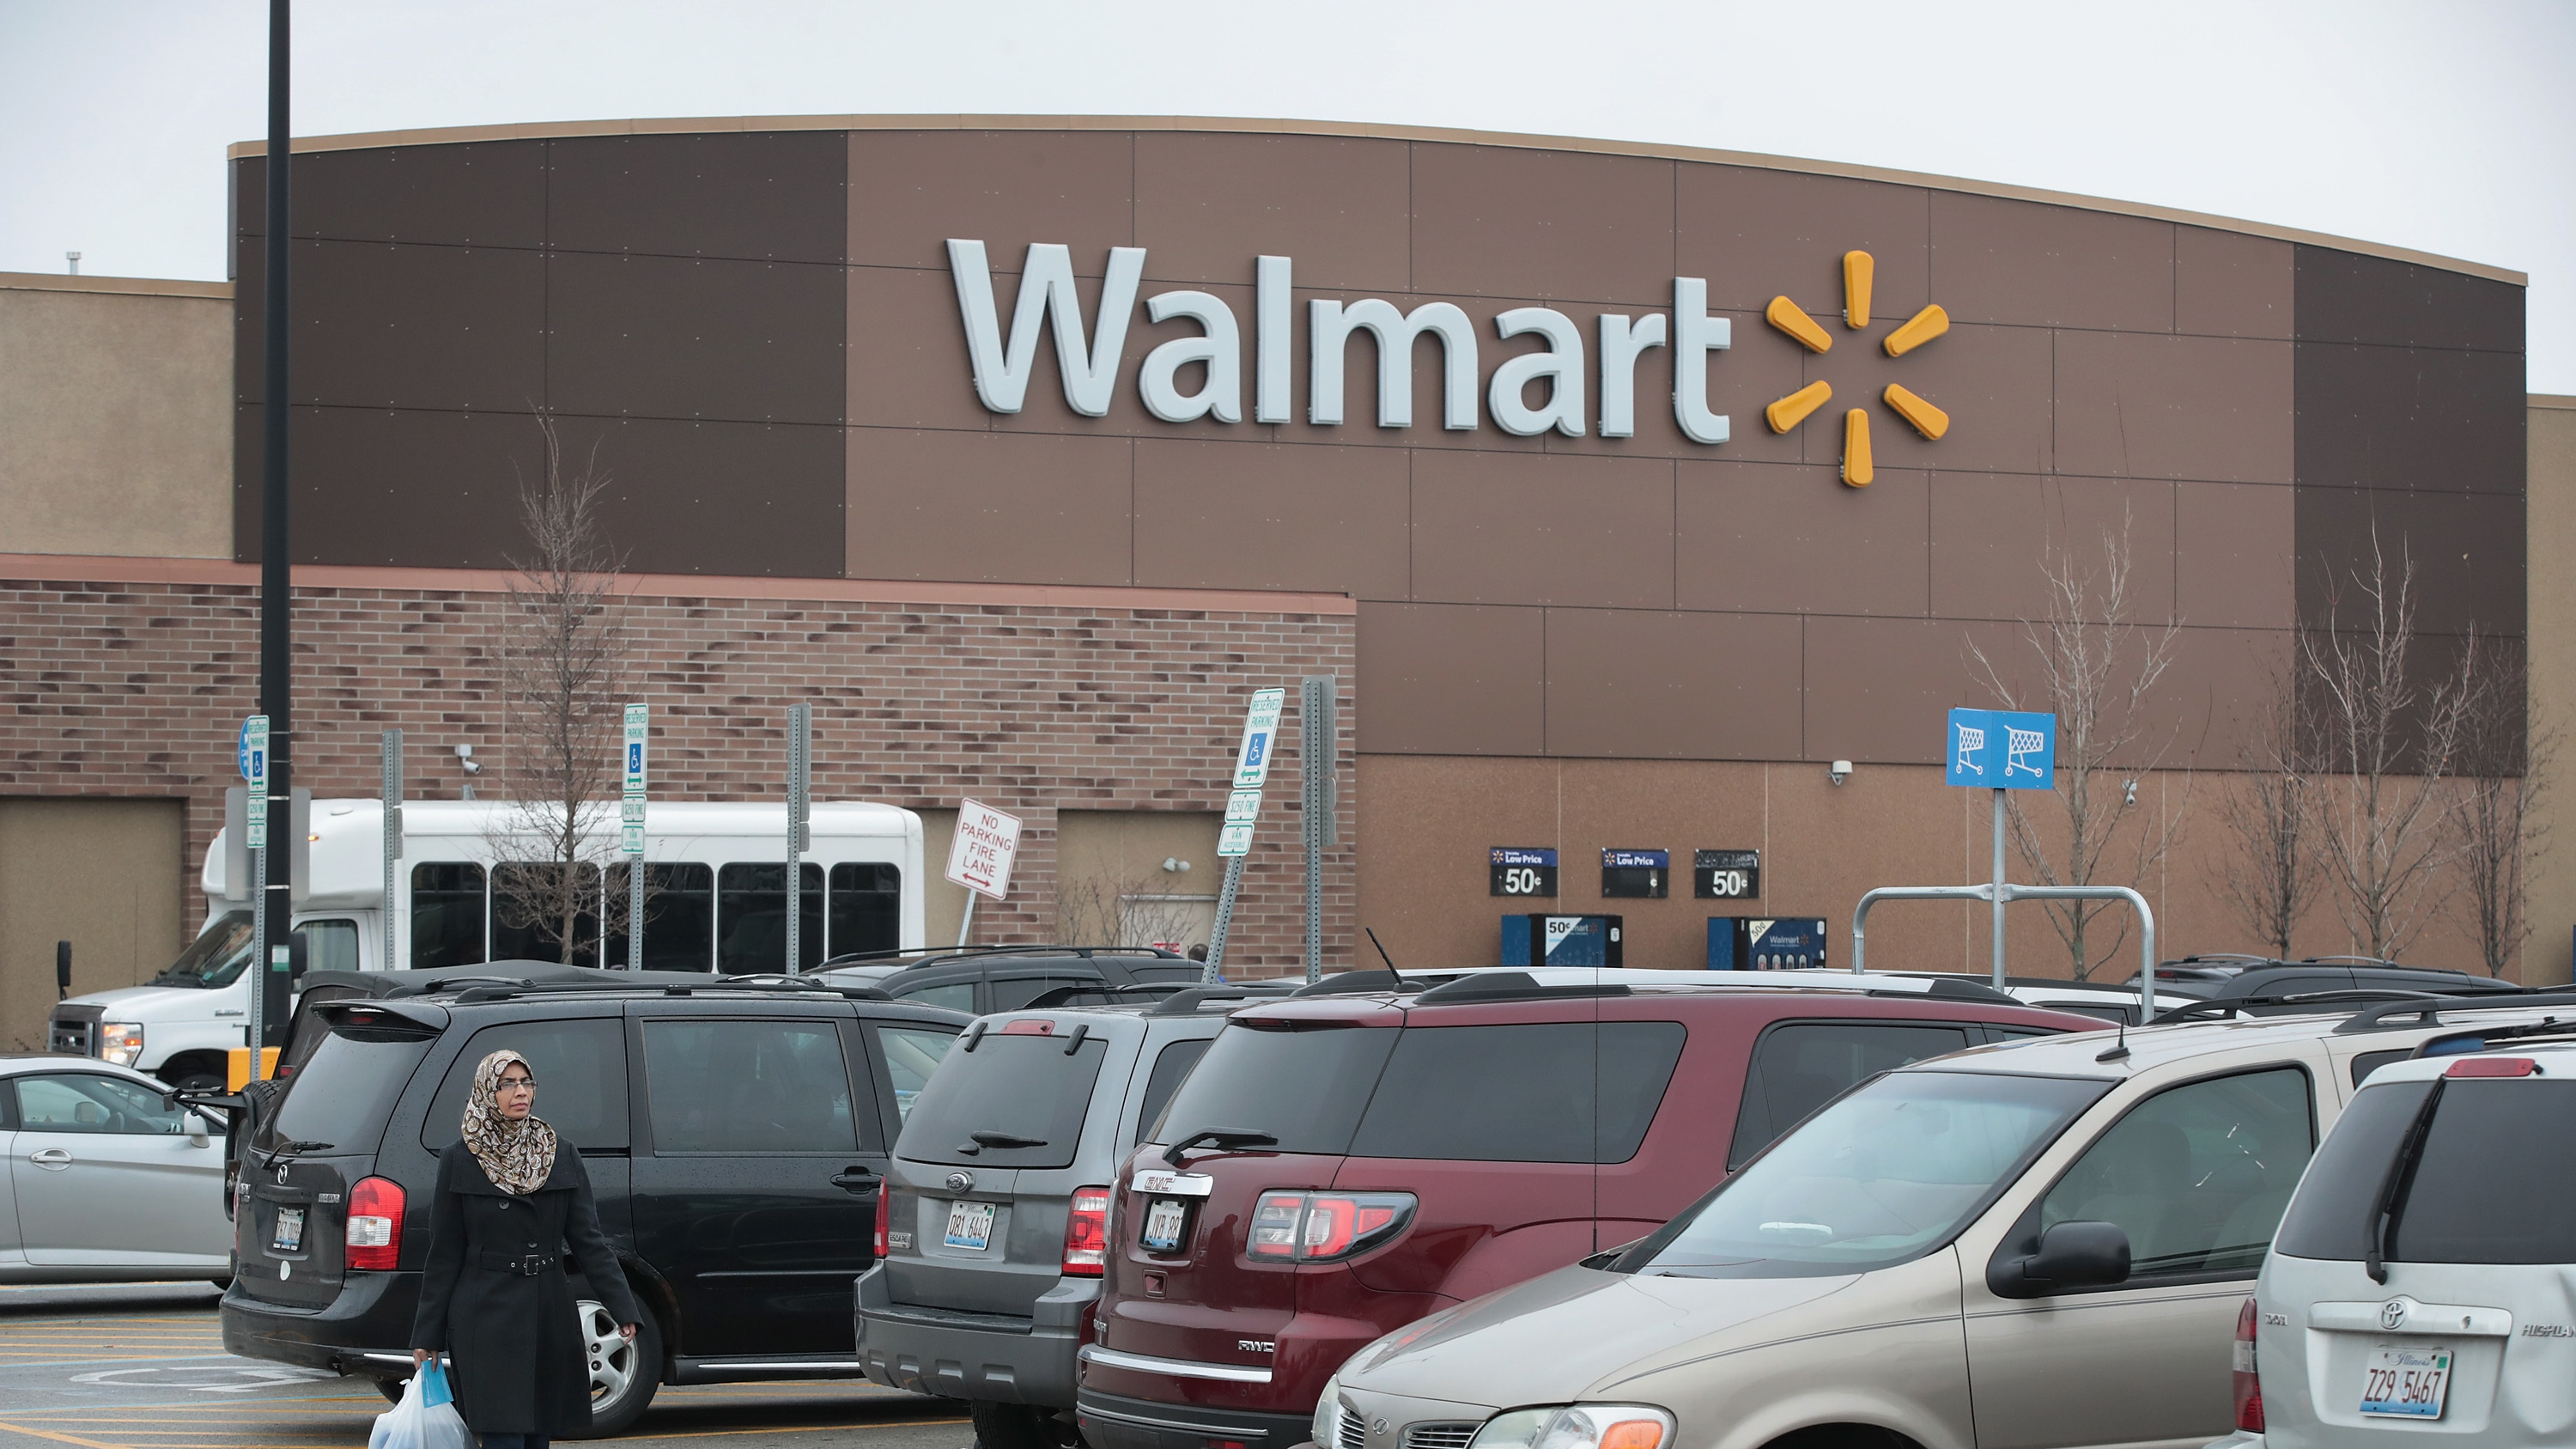 Walmart to Raise Minimum US Wage to $11 an Hour